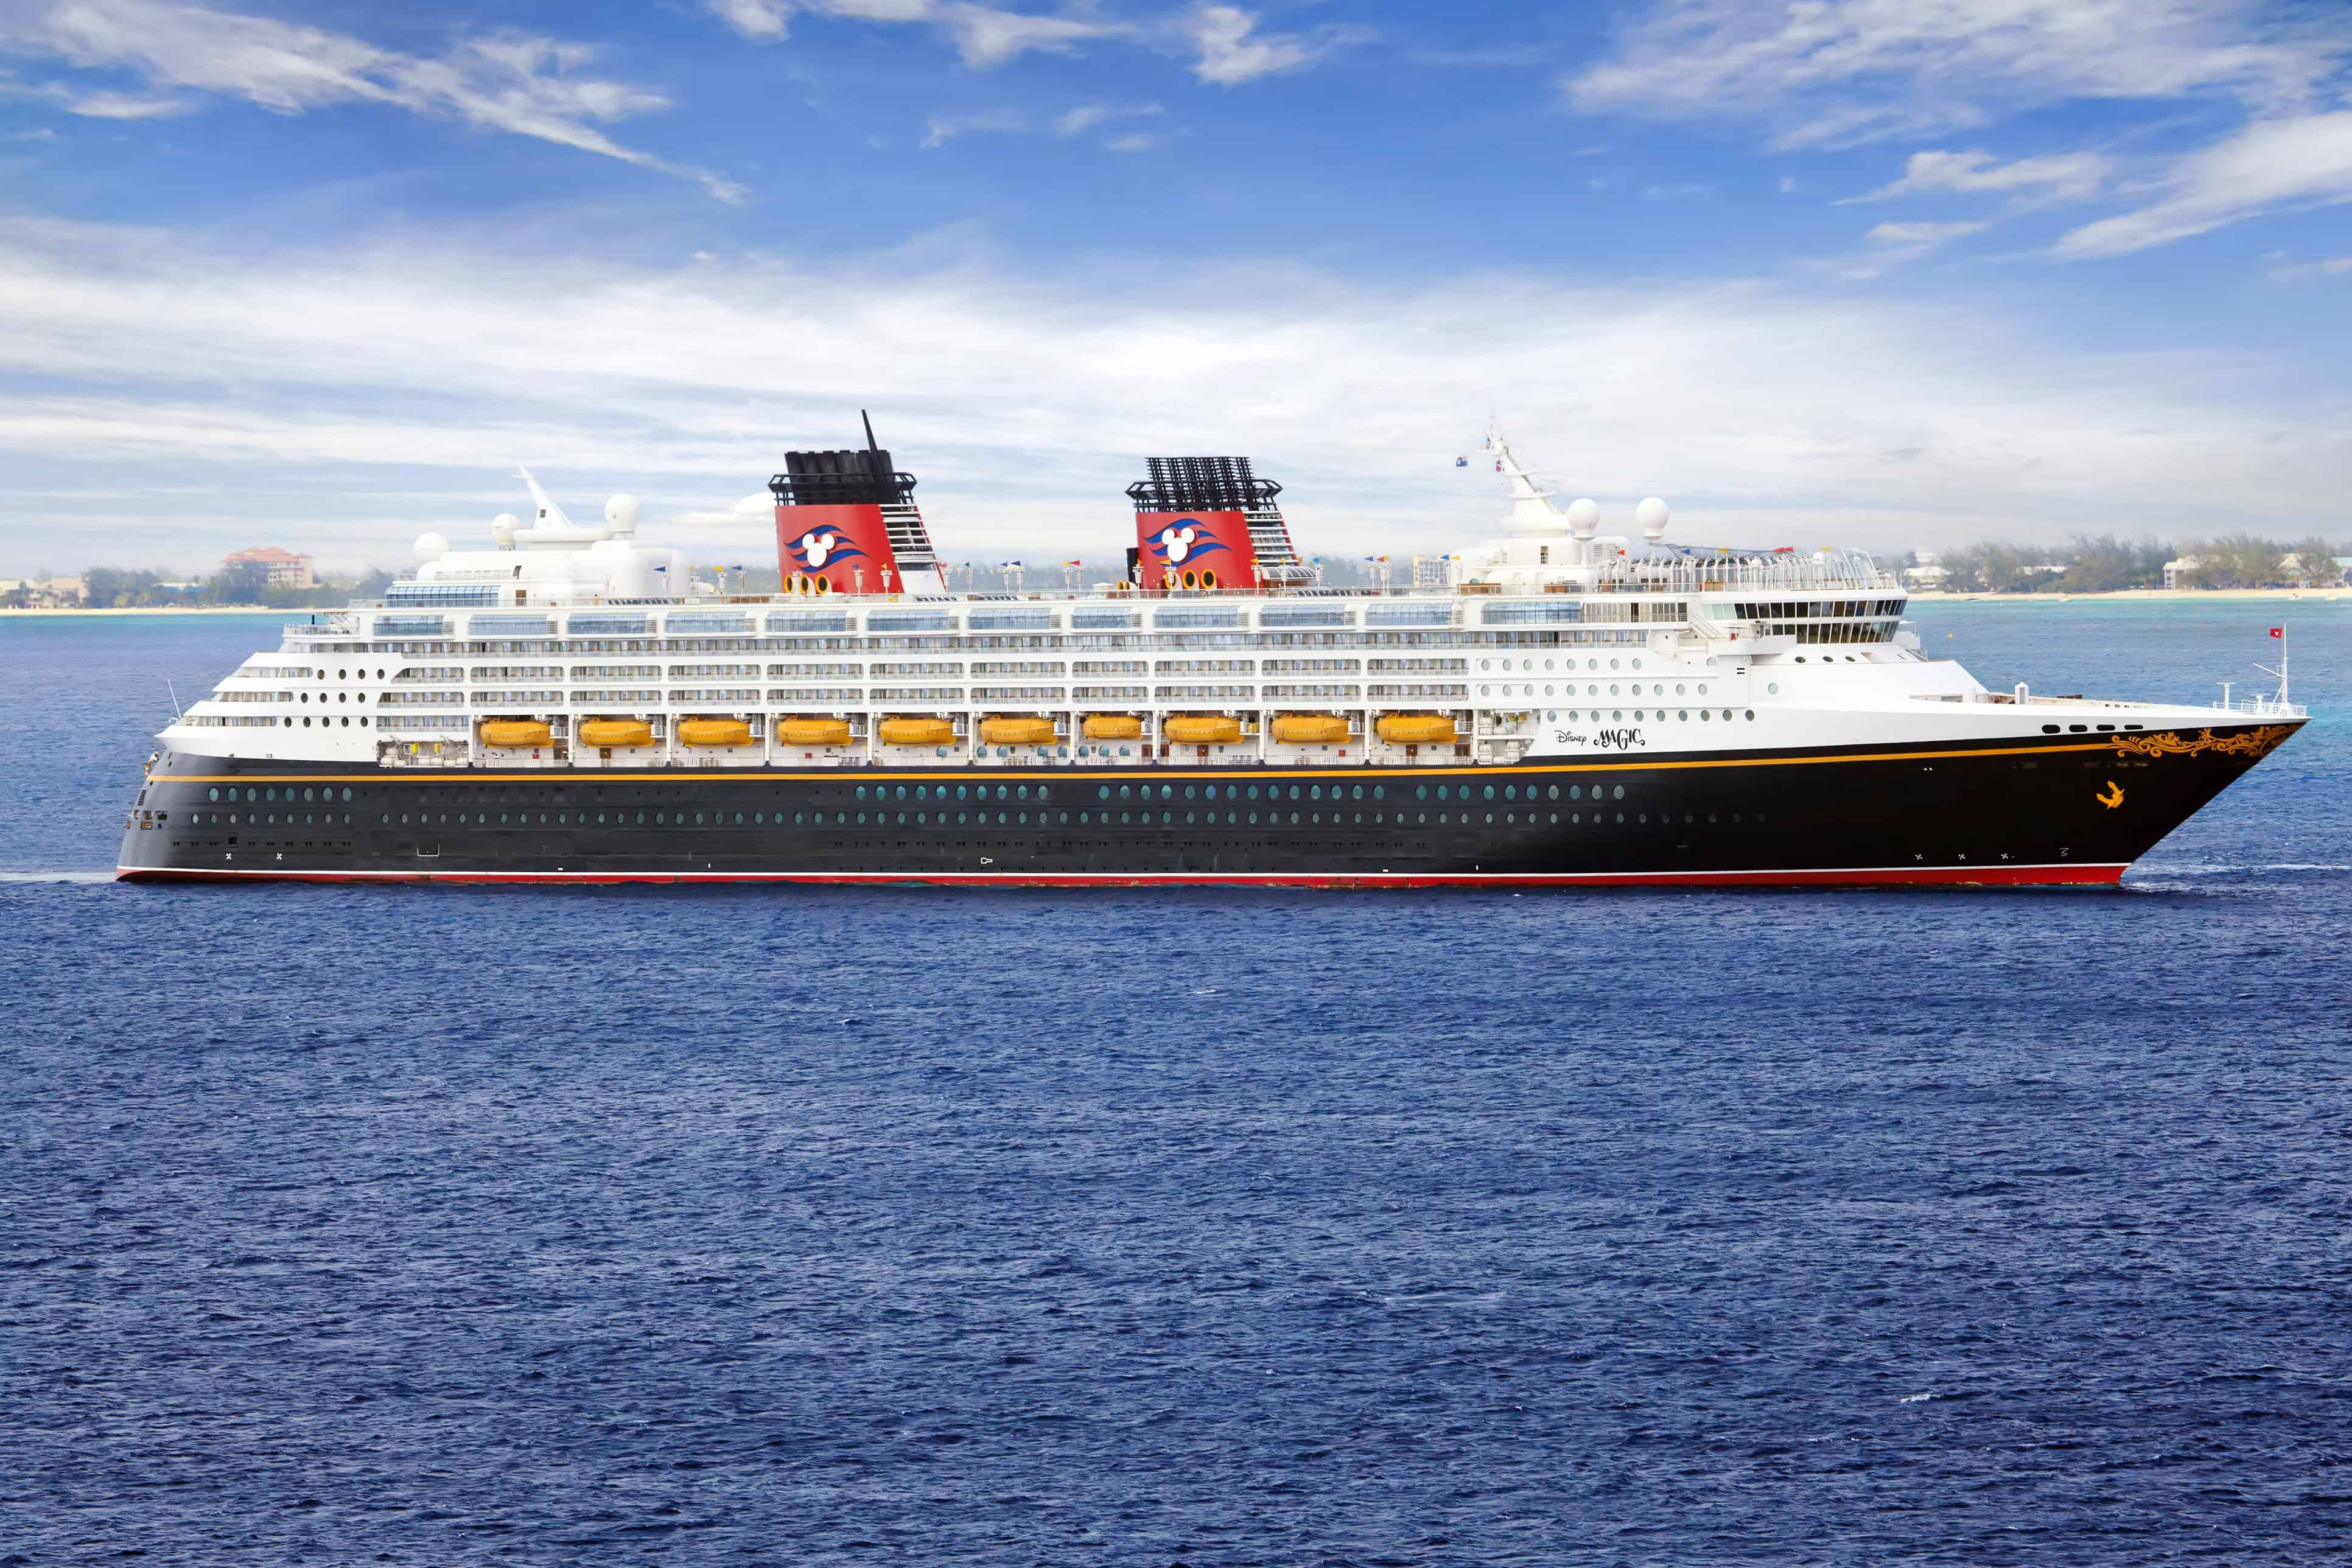 How To Do a Disney Cruise on Points